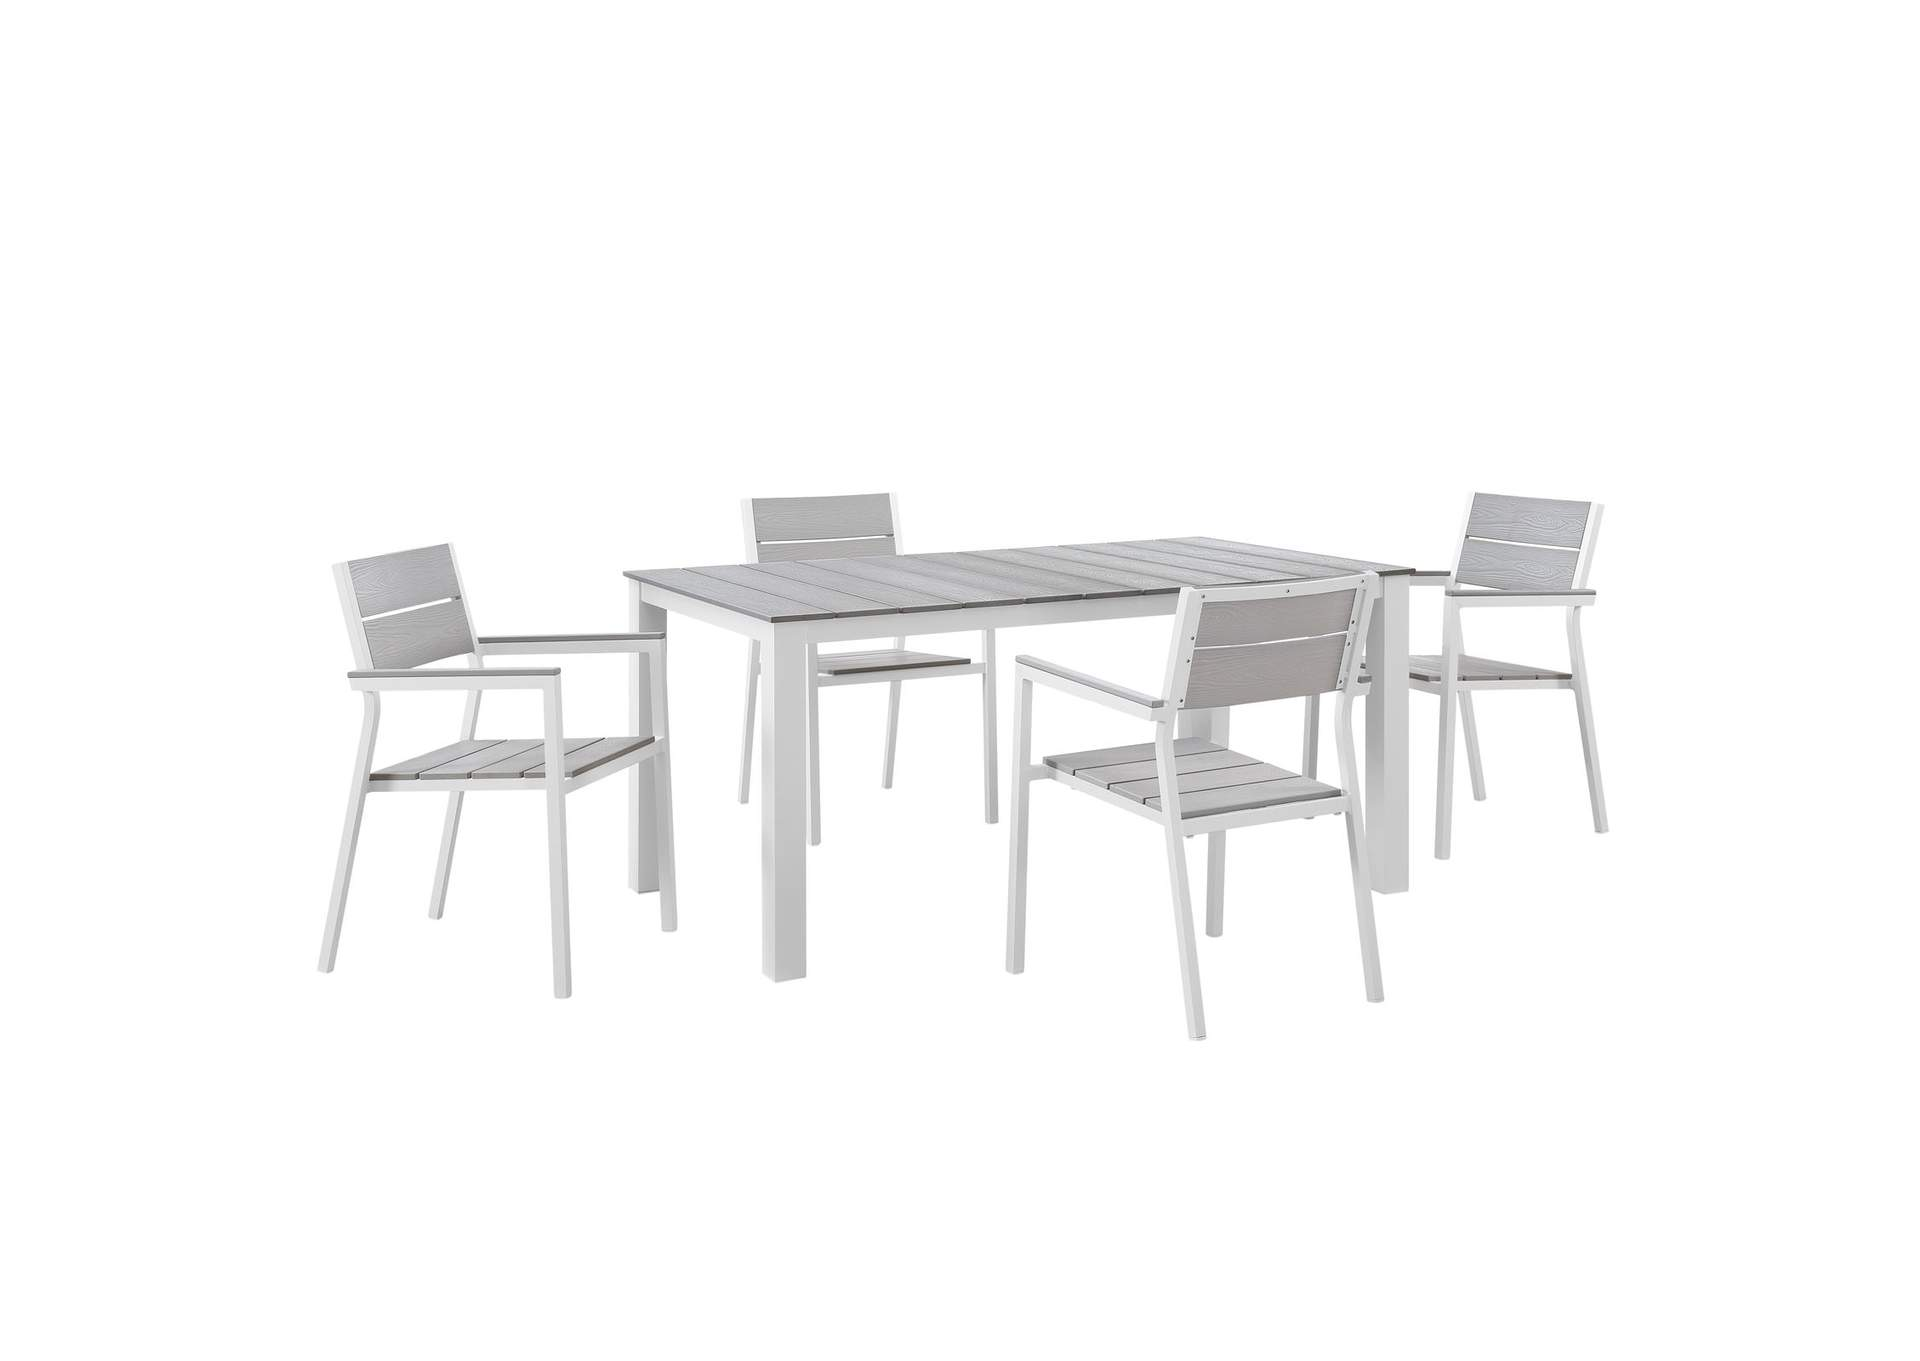 Maine White Light Gray 5 Piece Outdoor Patio Dining Set,Modway